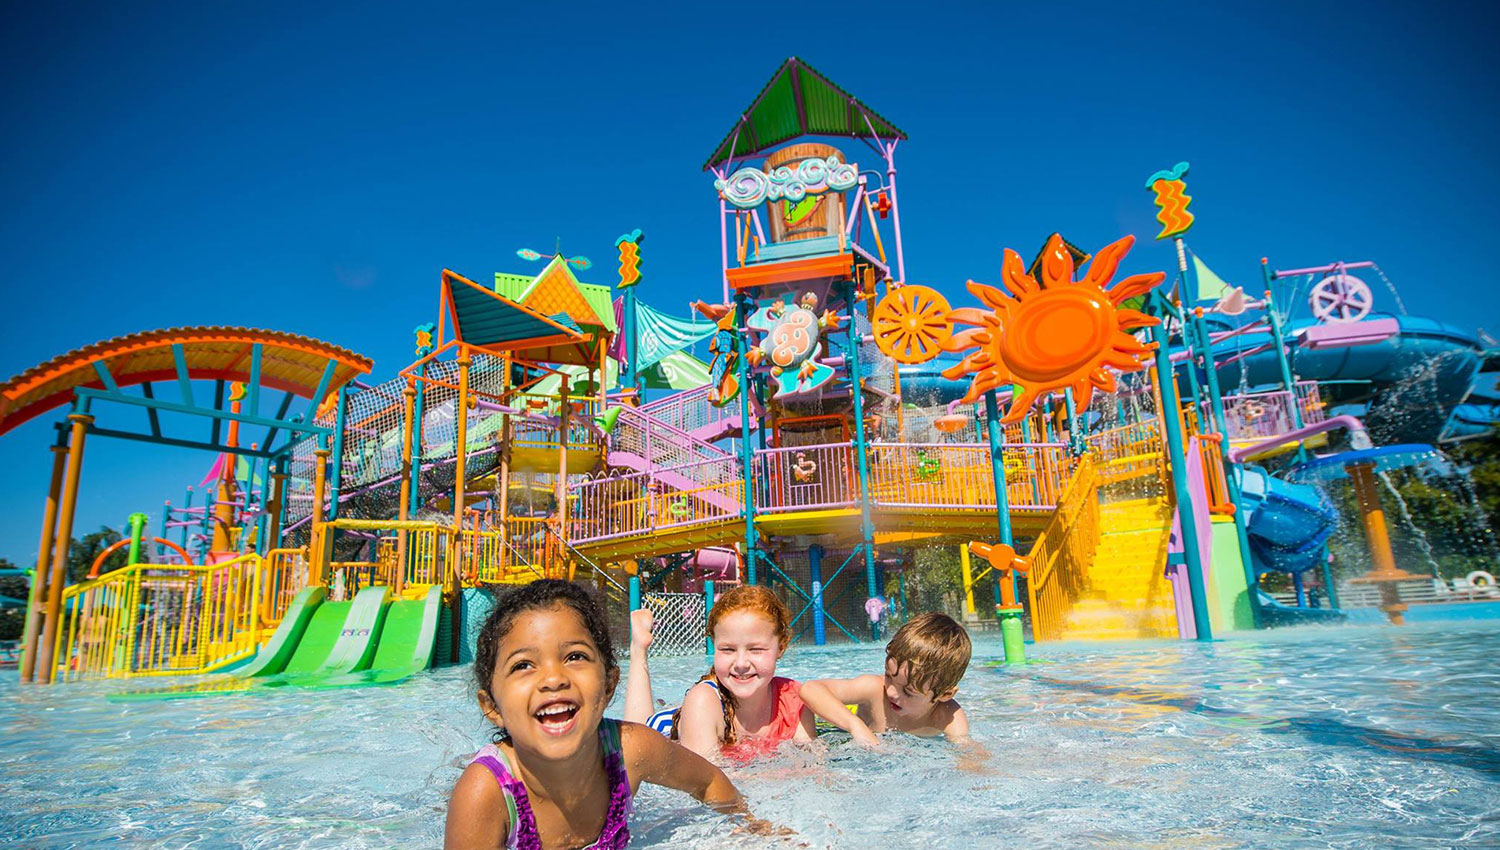 water theme park with kids swimming in the pool